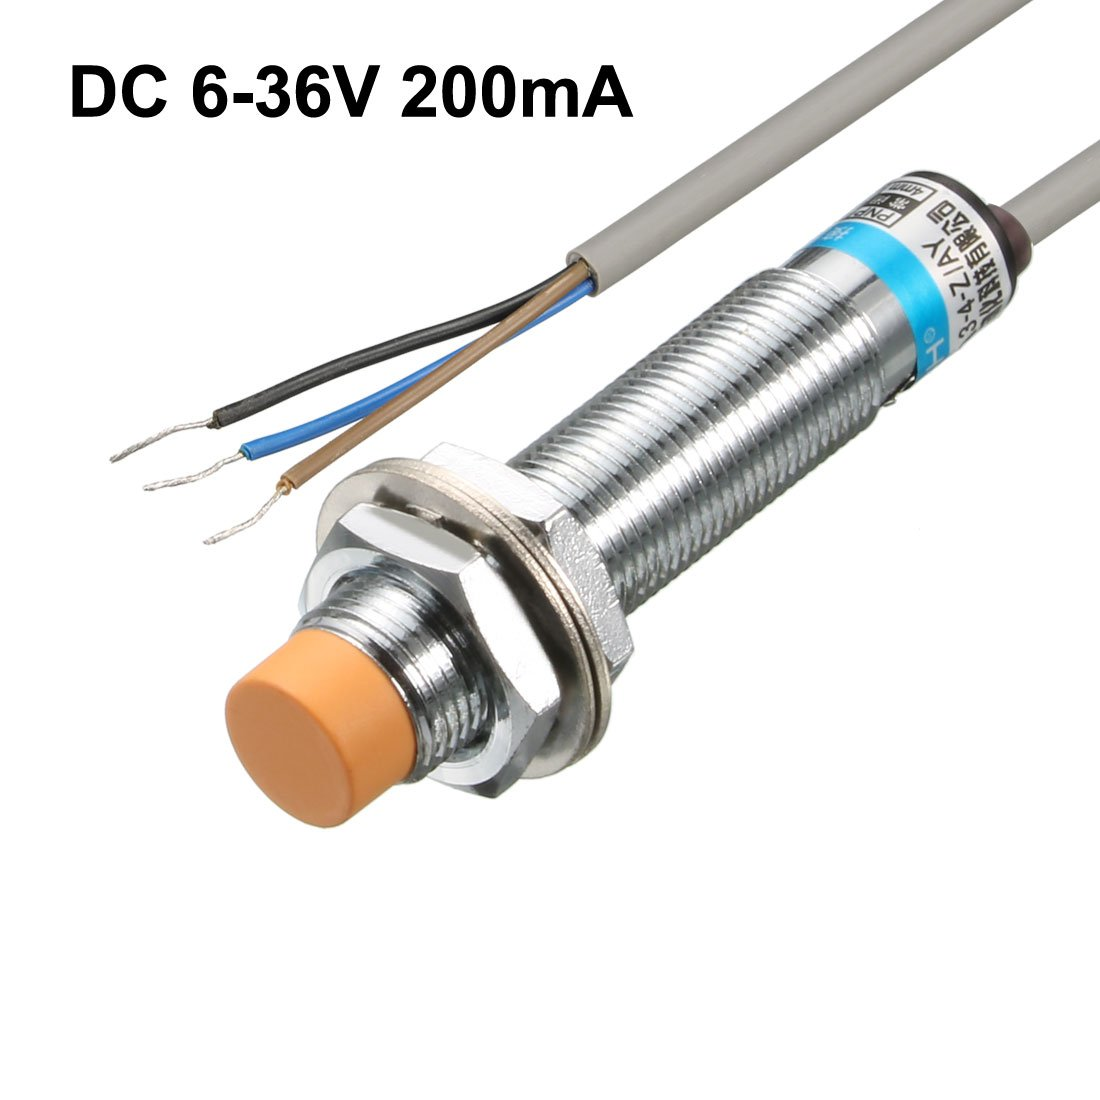 uxcell 4mm Inductive Proximity Sensor Switch Detector NPN NC DC 6-36V 200mA 3-Wire Cylinder Type LJ12A3-4-Z//AX